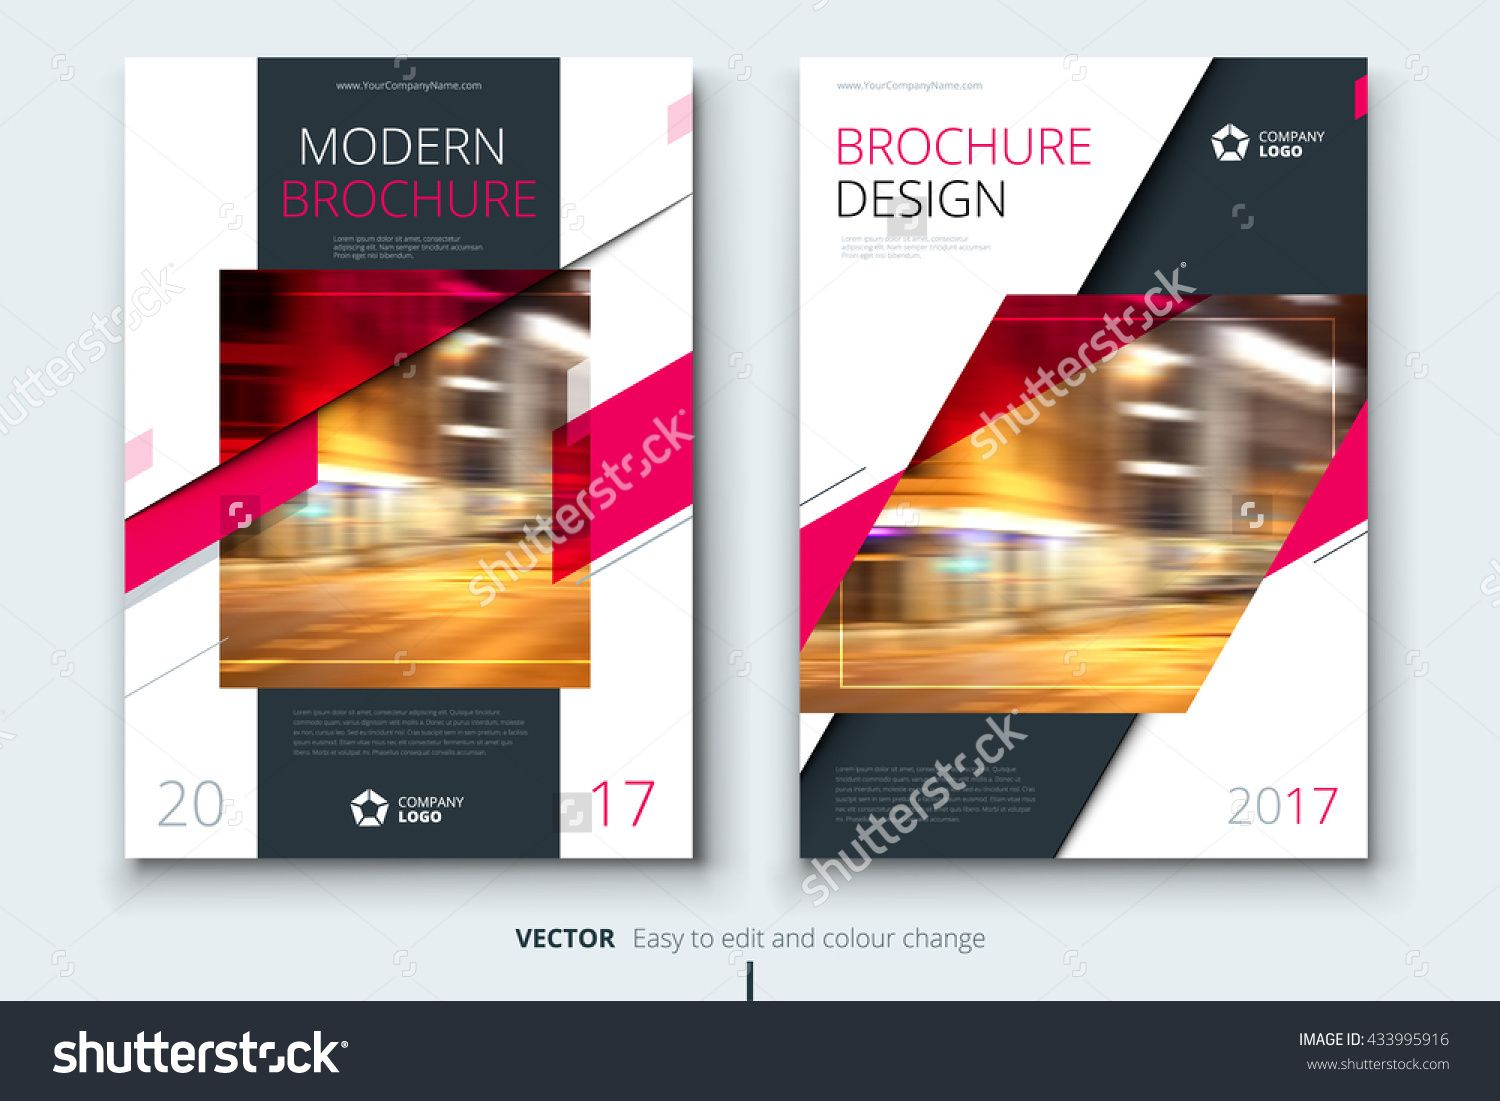 pink brochure design modern brochure template brochures. Black Bedroom Furniture Sets. Home Design Ideas